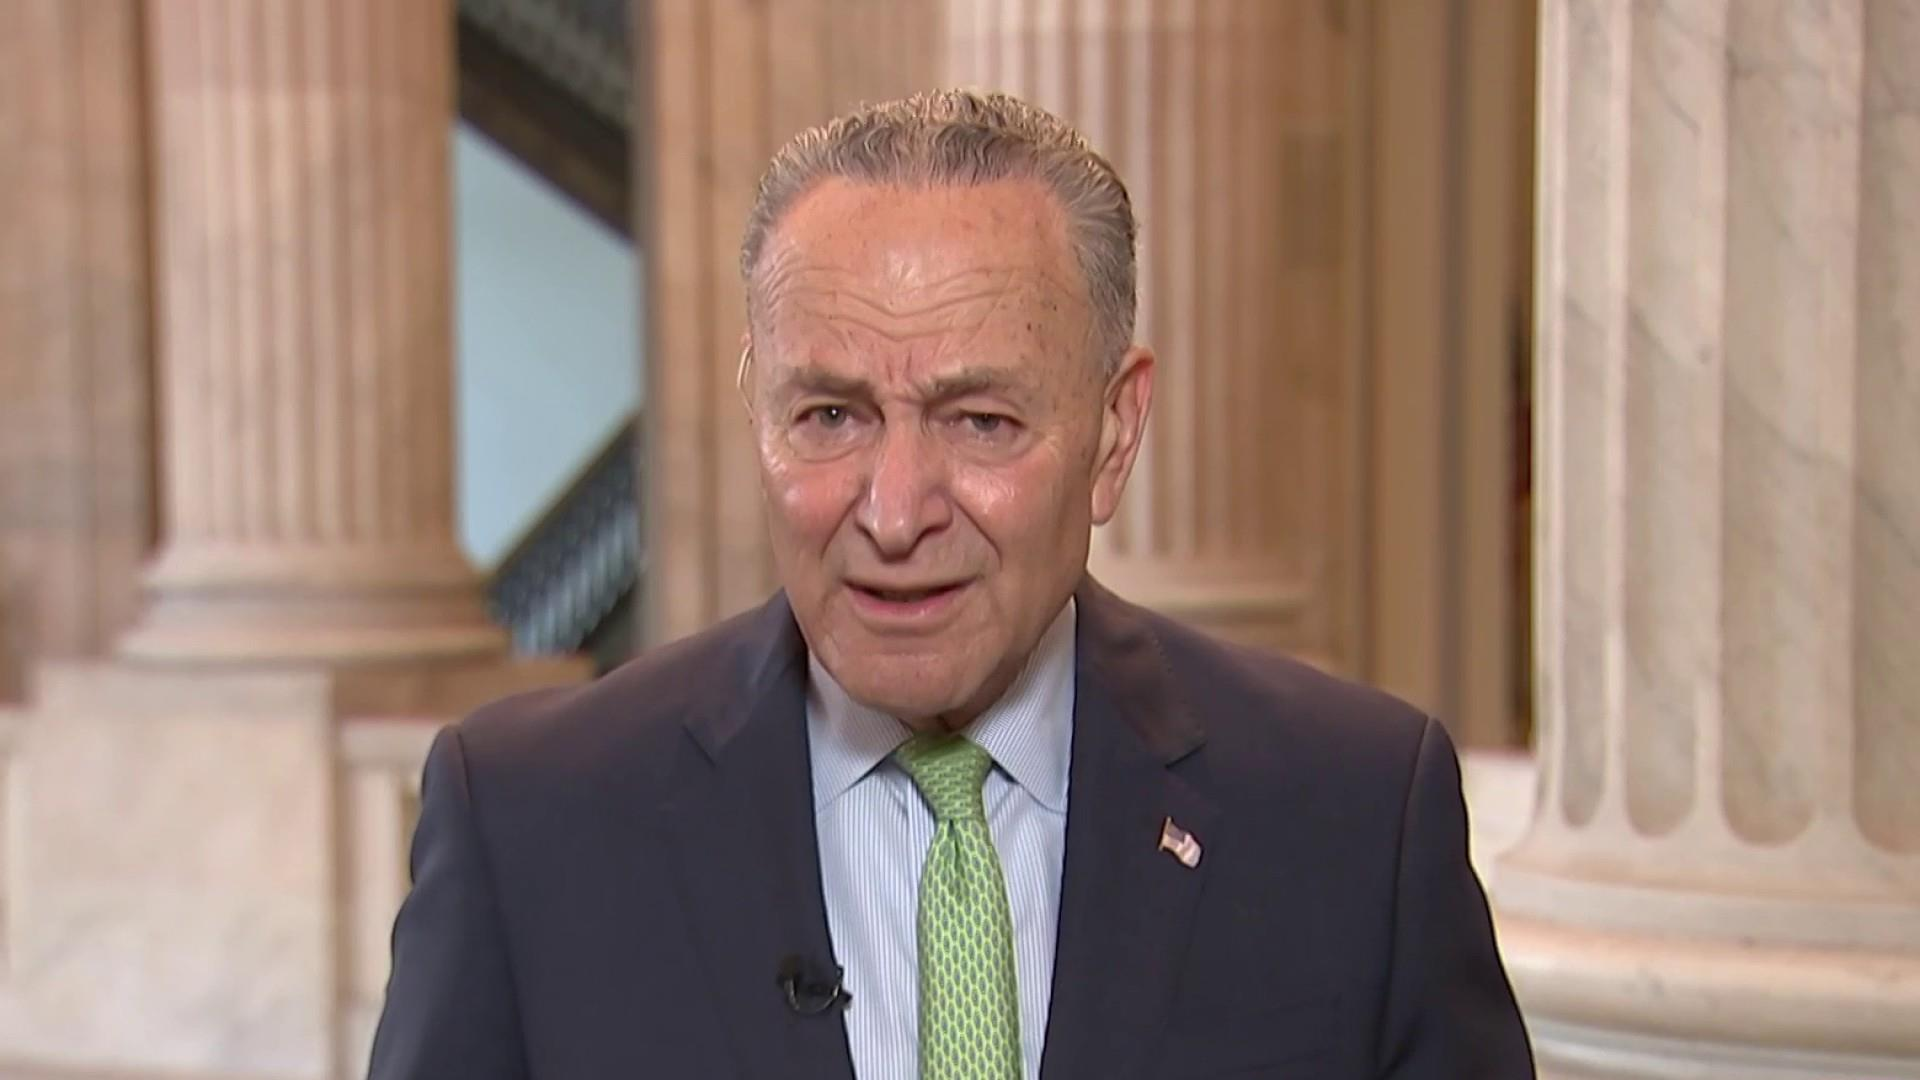 Schumer: We came out better yesterday than Trump did